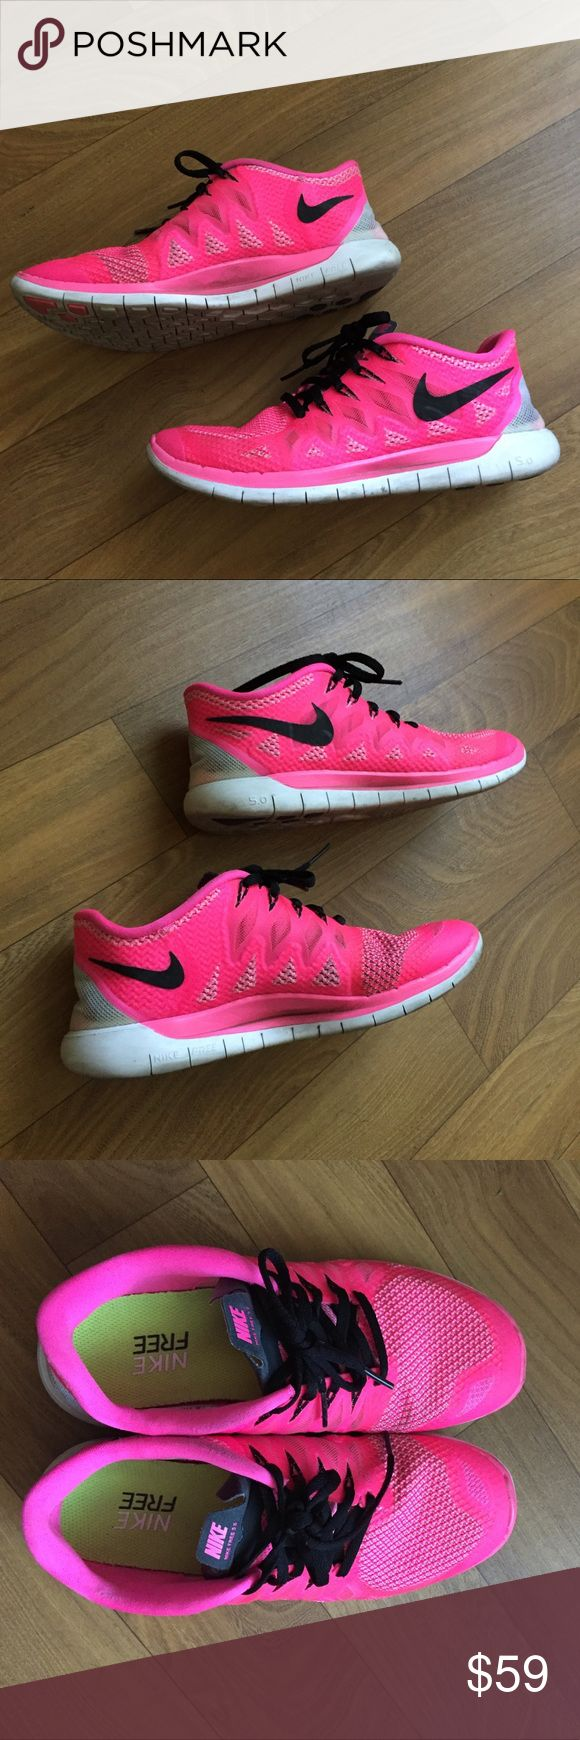 Pink rare Nike free run 5.0 shoes Pink Nike Free Run 5.0 running shoes used in great condition Nike Shoes Athletic Shoes